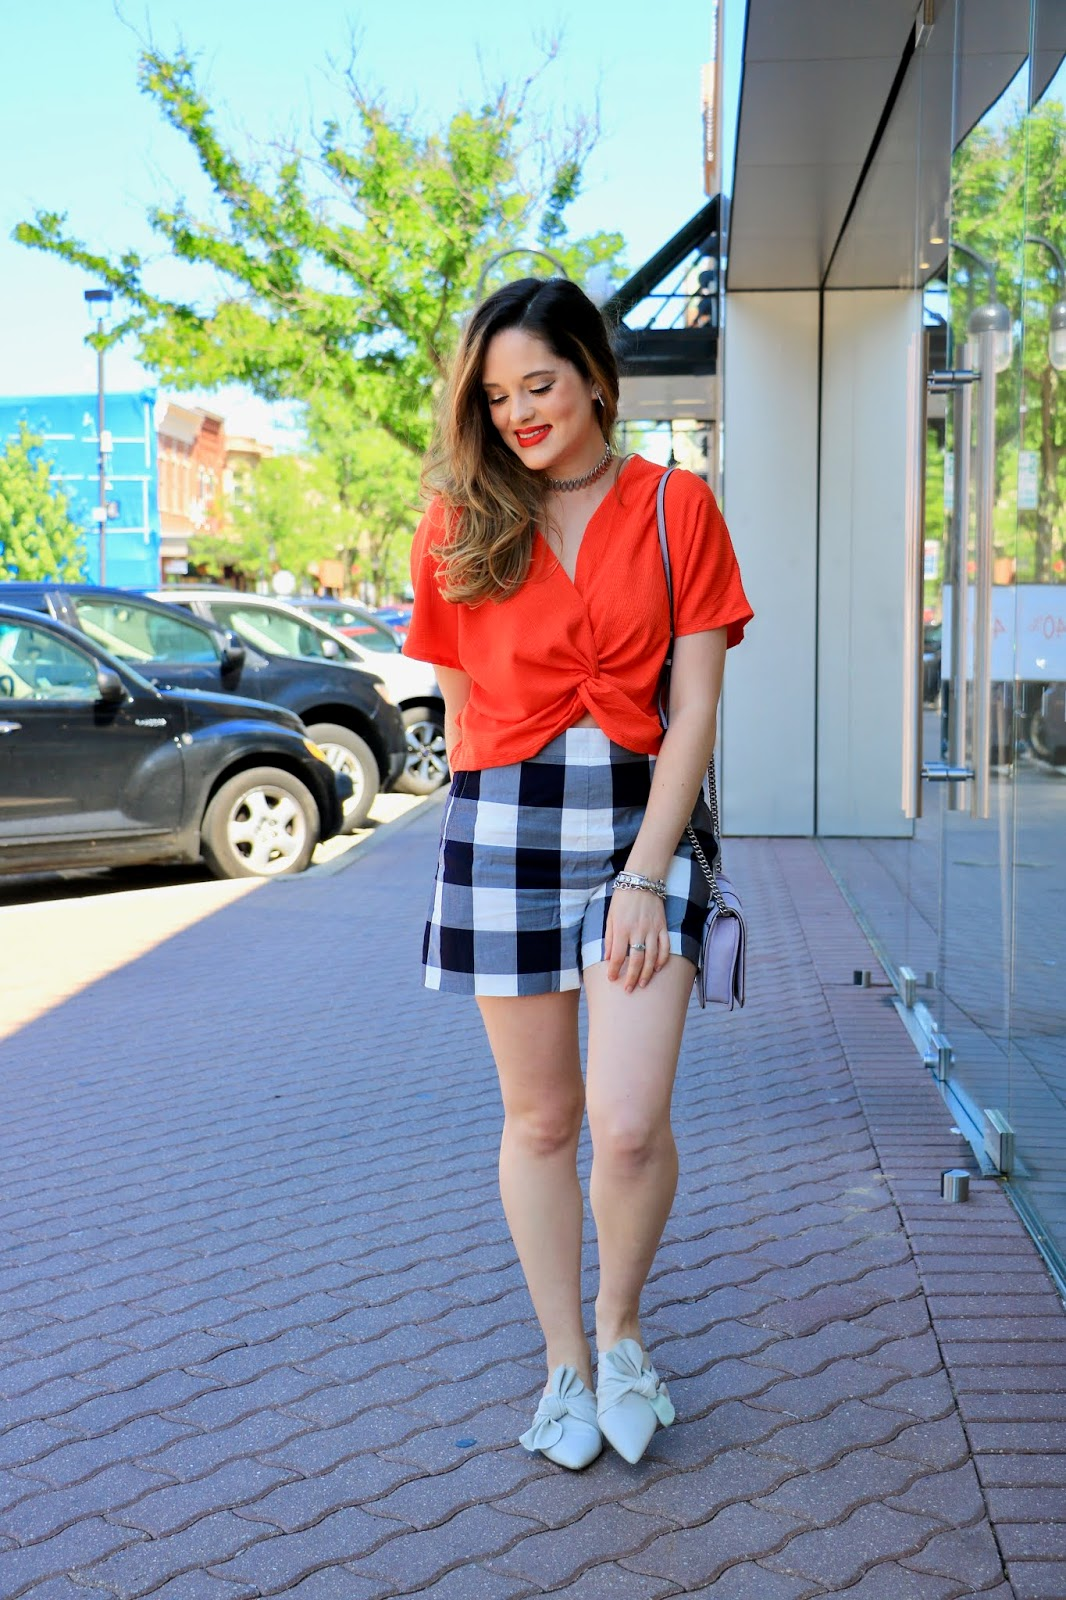 Nyc fashion blogger of Kat's Fashion Fix, Kathleen Harper, showing how to wear high-waisted plaid shorts in 2018